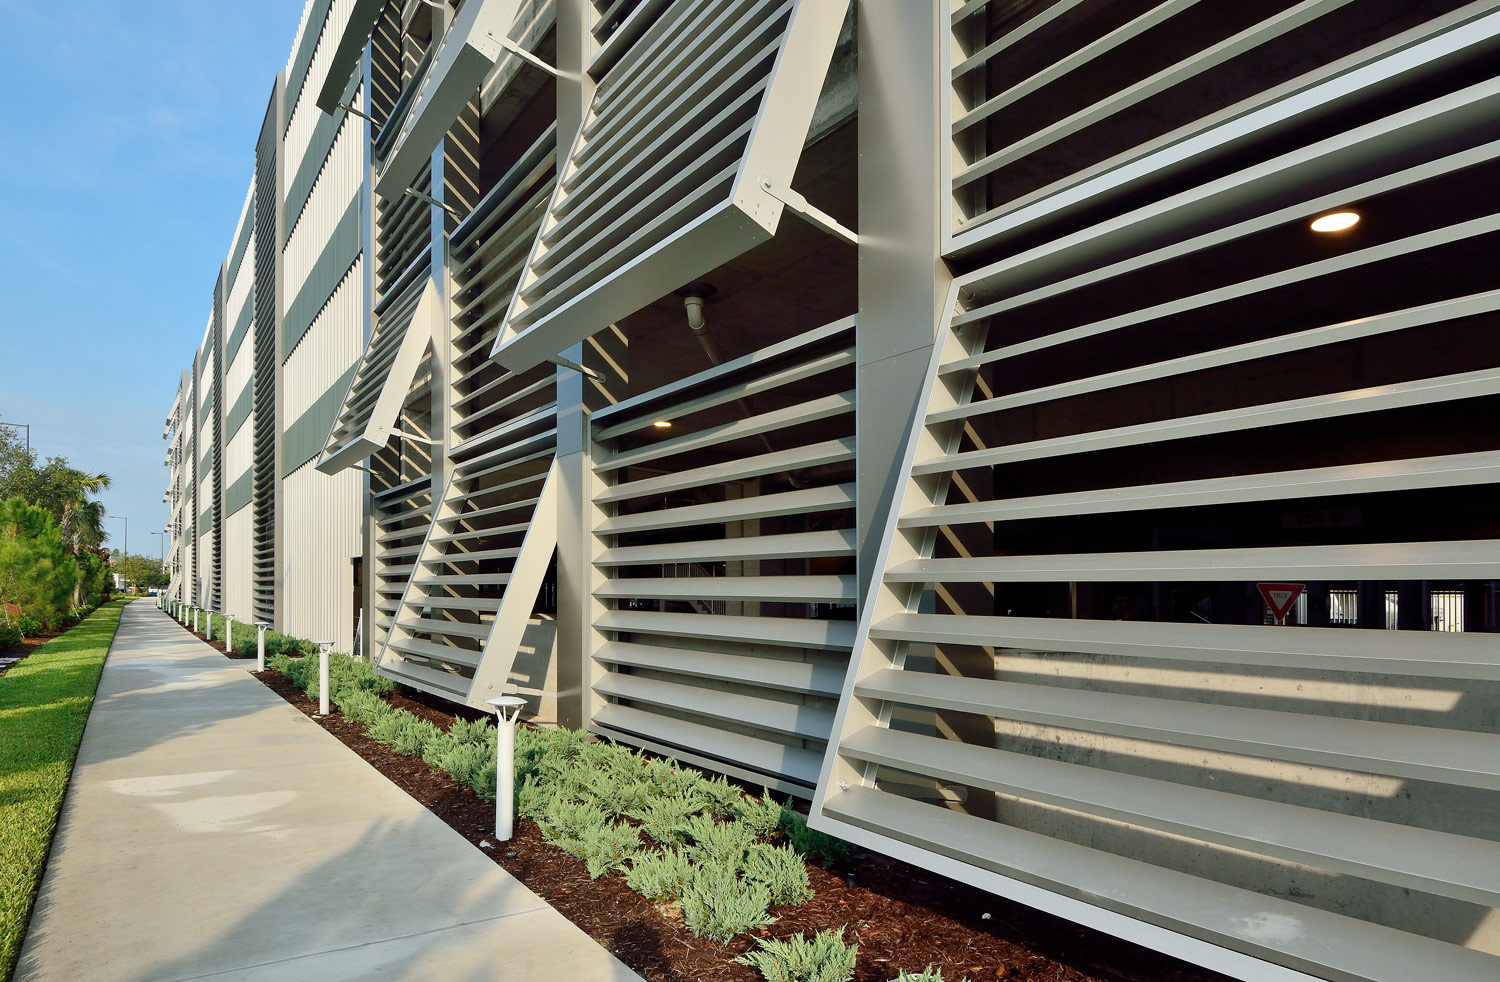 Louvers Standard Sheet Metal